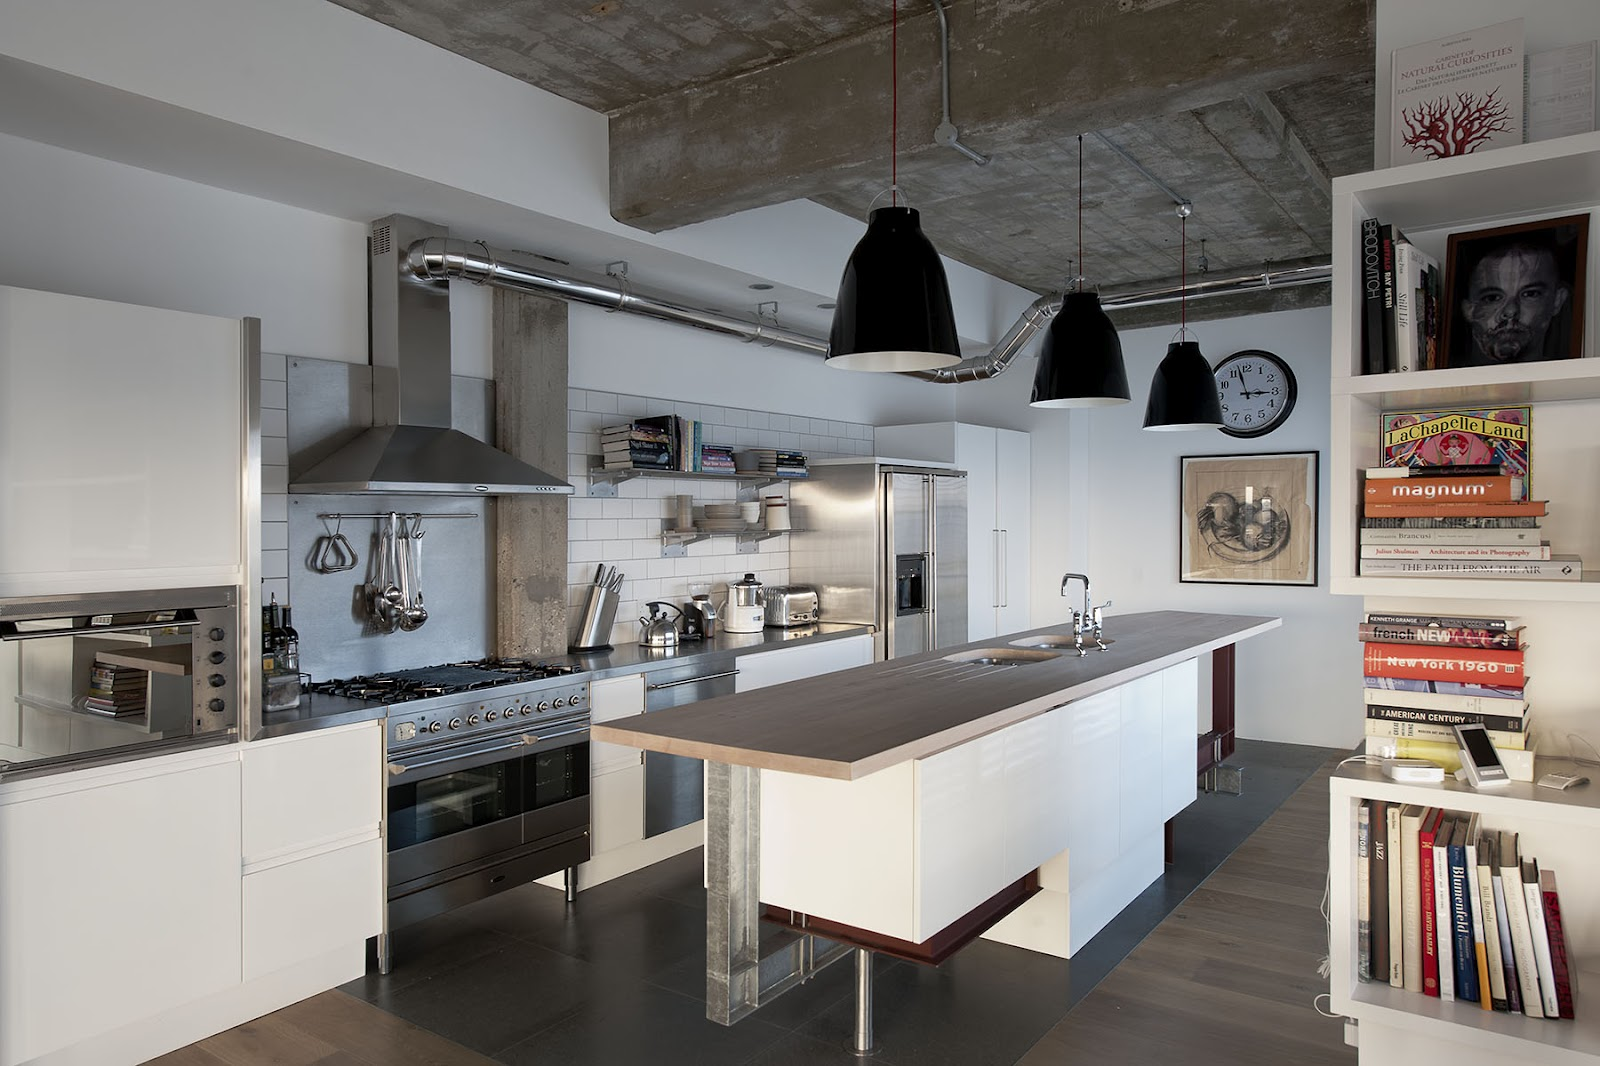 Industrial Rustic Kitchen Design 25 Cool Industrial Kitchen Designs